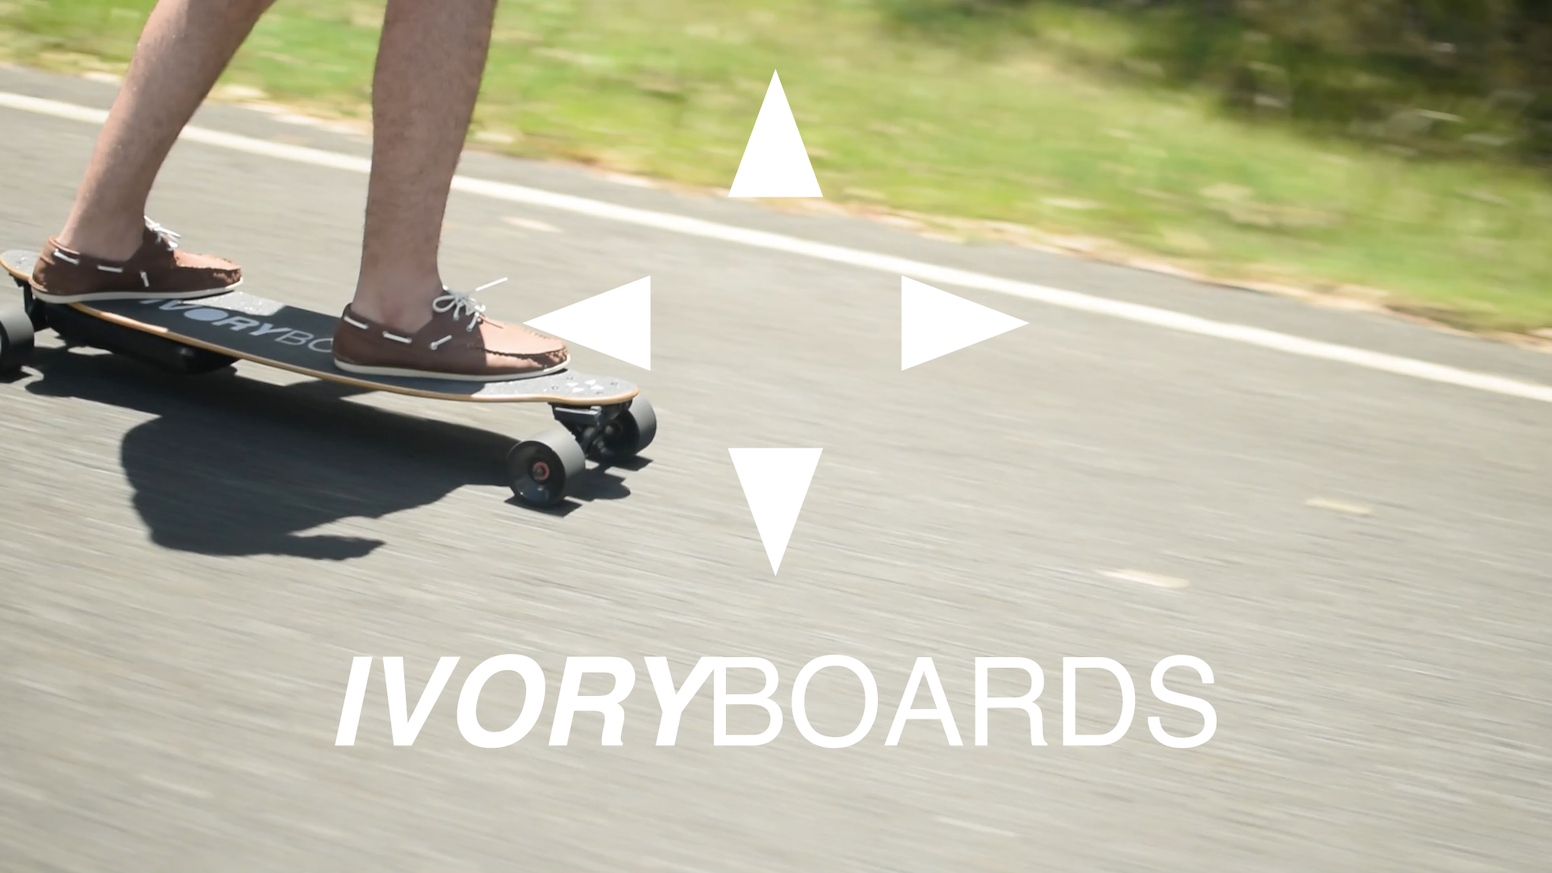 Introducing the IvoryBoard, an affordable, high-performance electric skateboard.